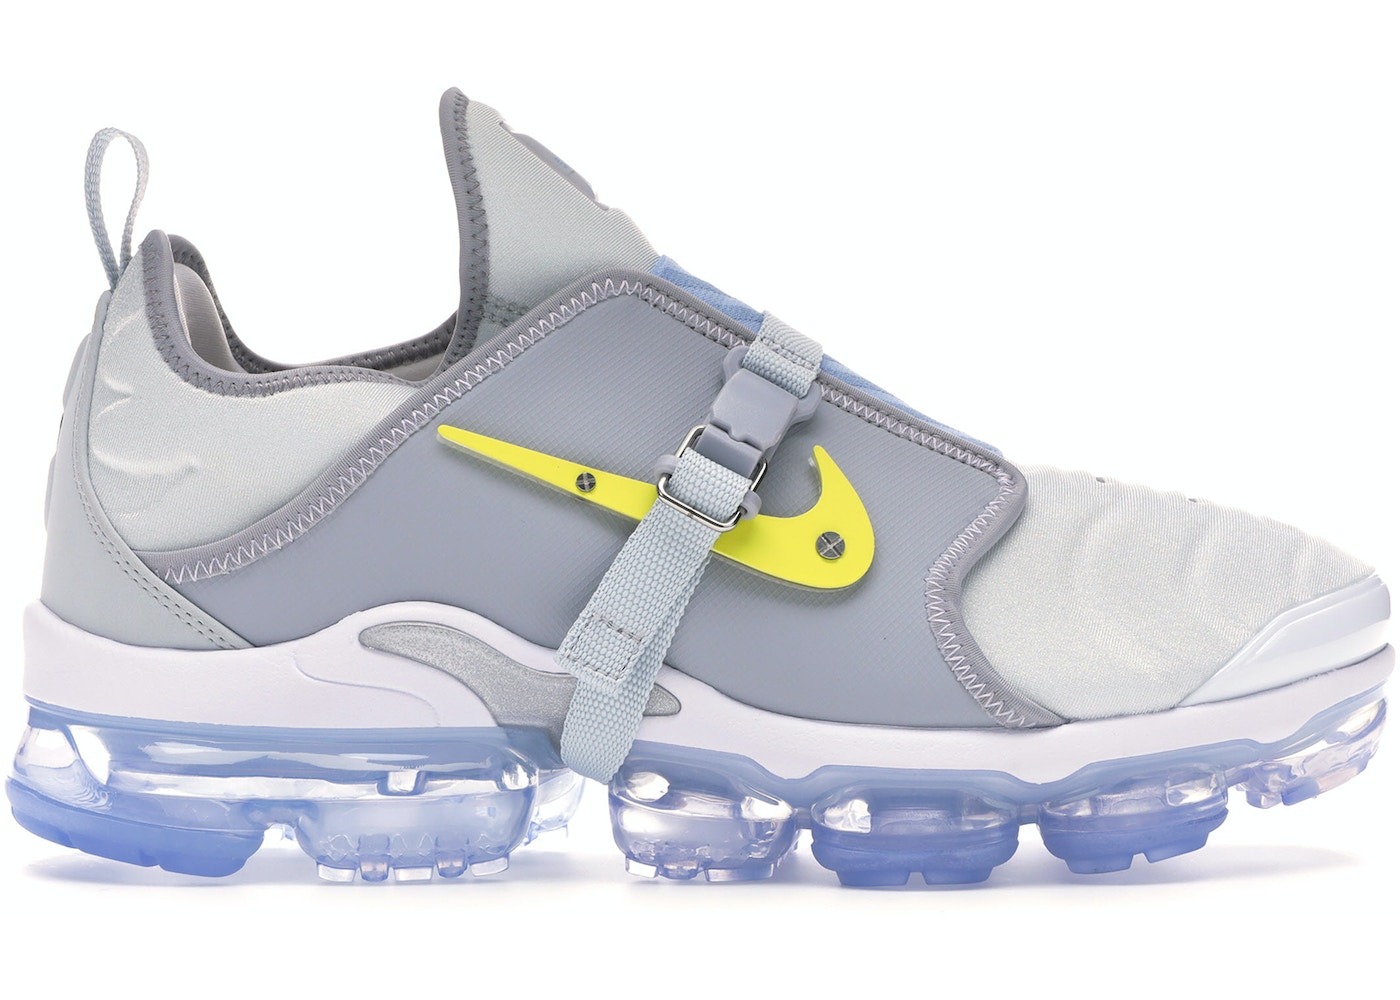 0e5943fb1ded9 Buy Nike Air Max VaporMax Shoes   Deadstock Sneakers